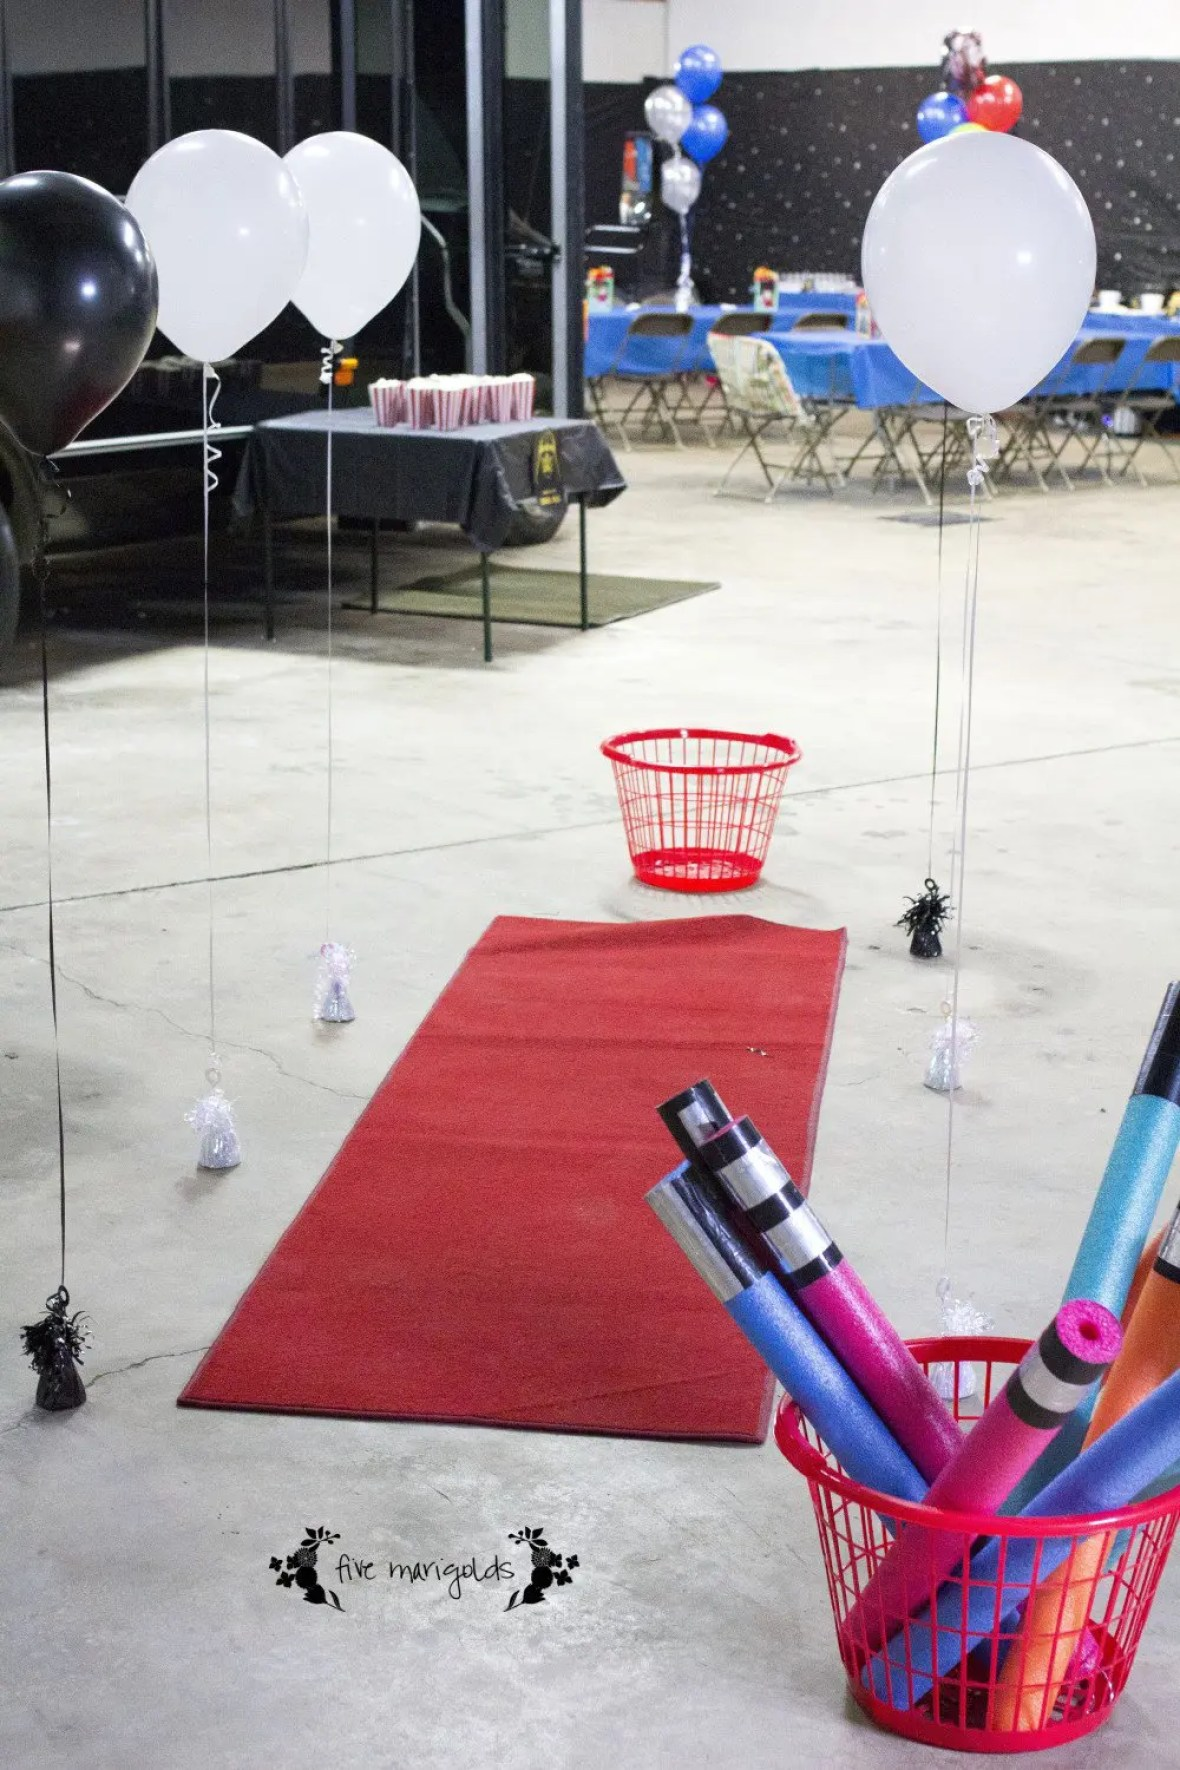 Star Wars Birthday Party Jedi Training Course with Balloons and Pool Noodles | www.fivemarigolds.com